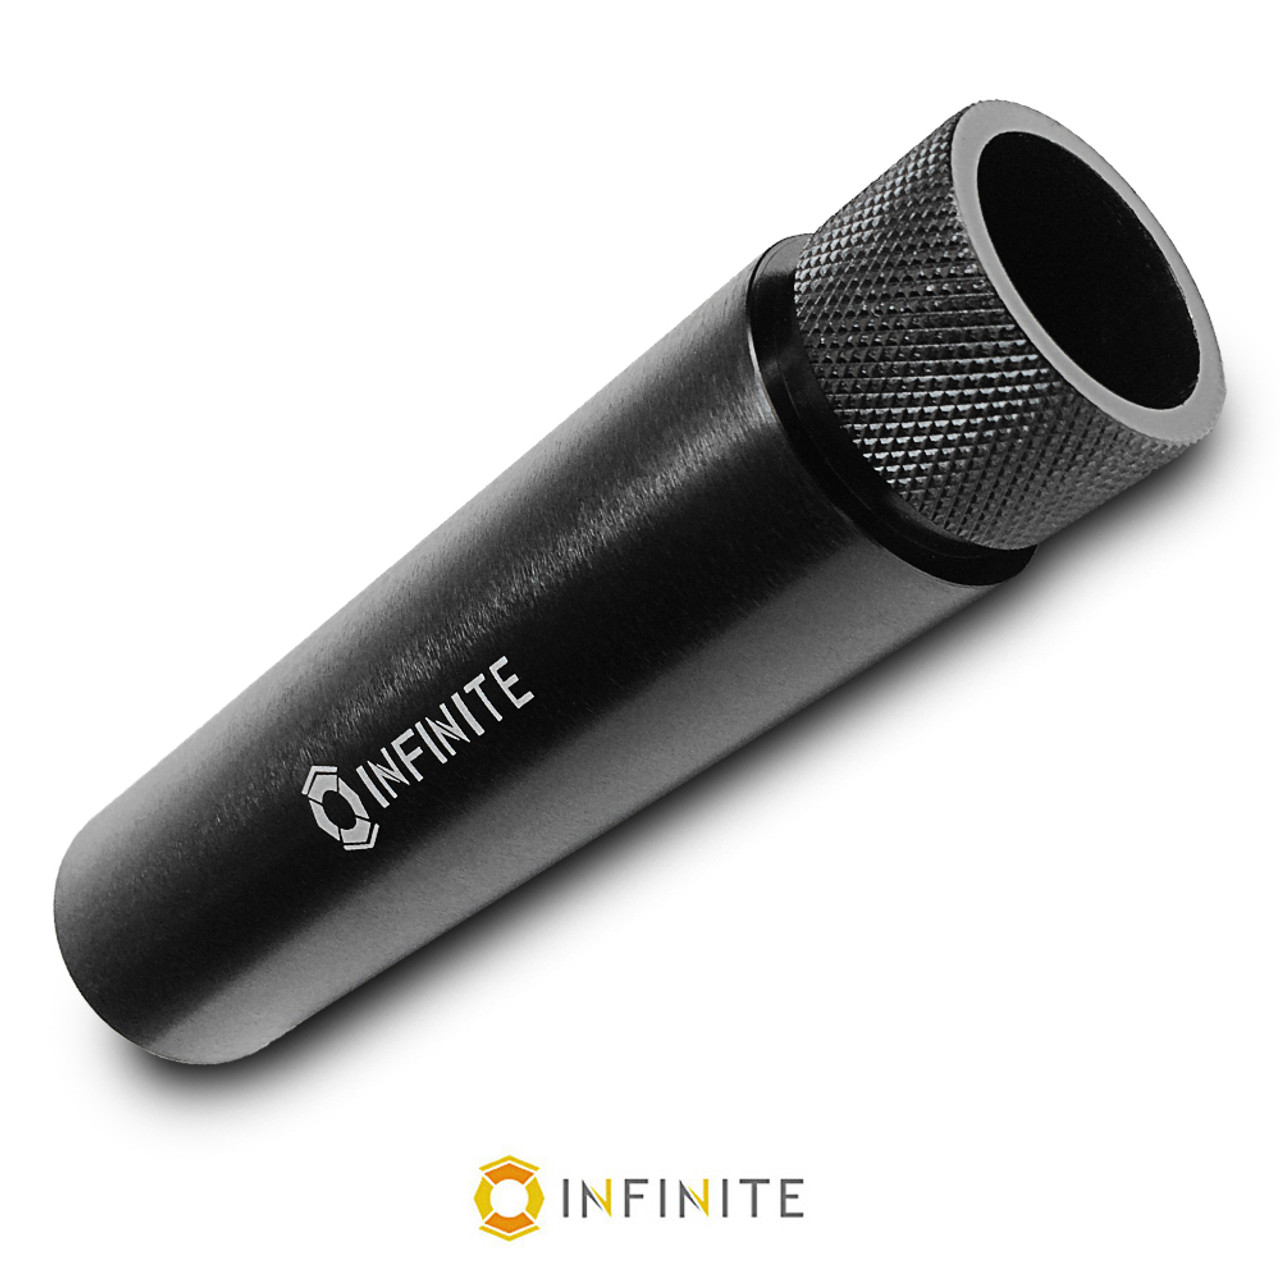 hight resolution of 1 2 28 fake suppressor w knurled end black aluminum infinite product solutions